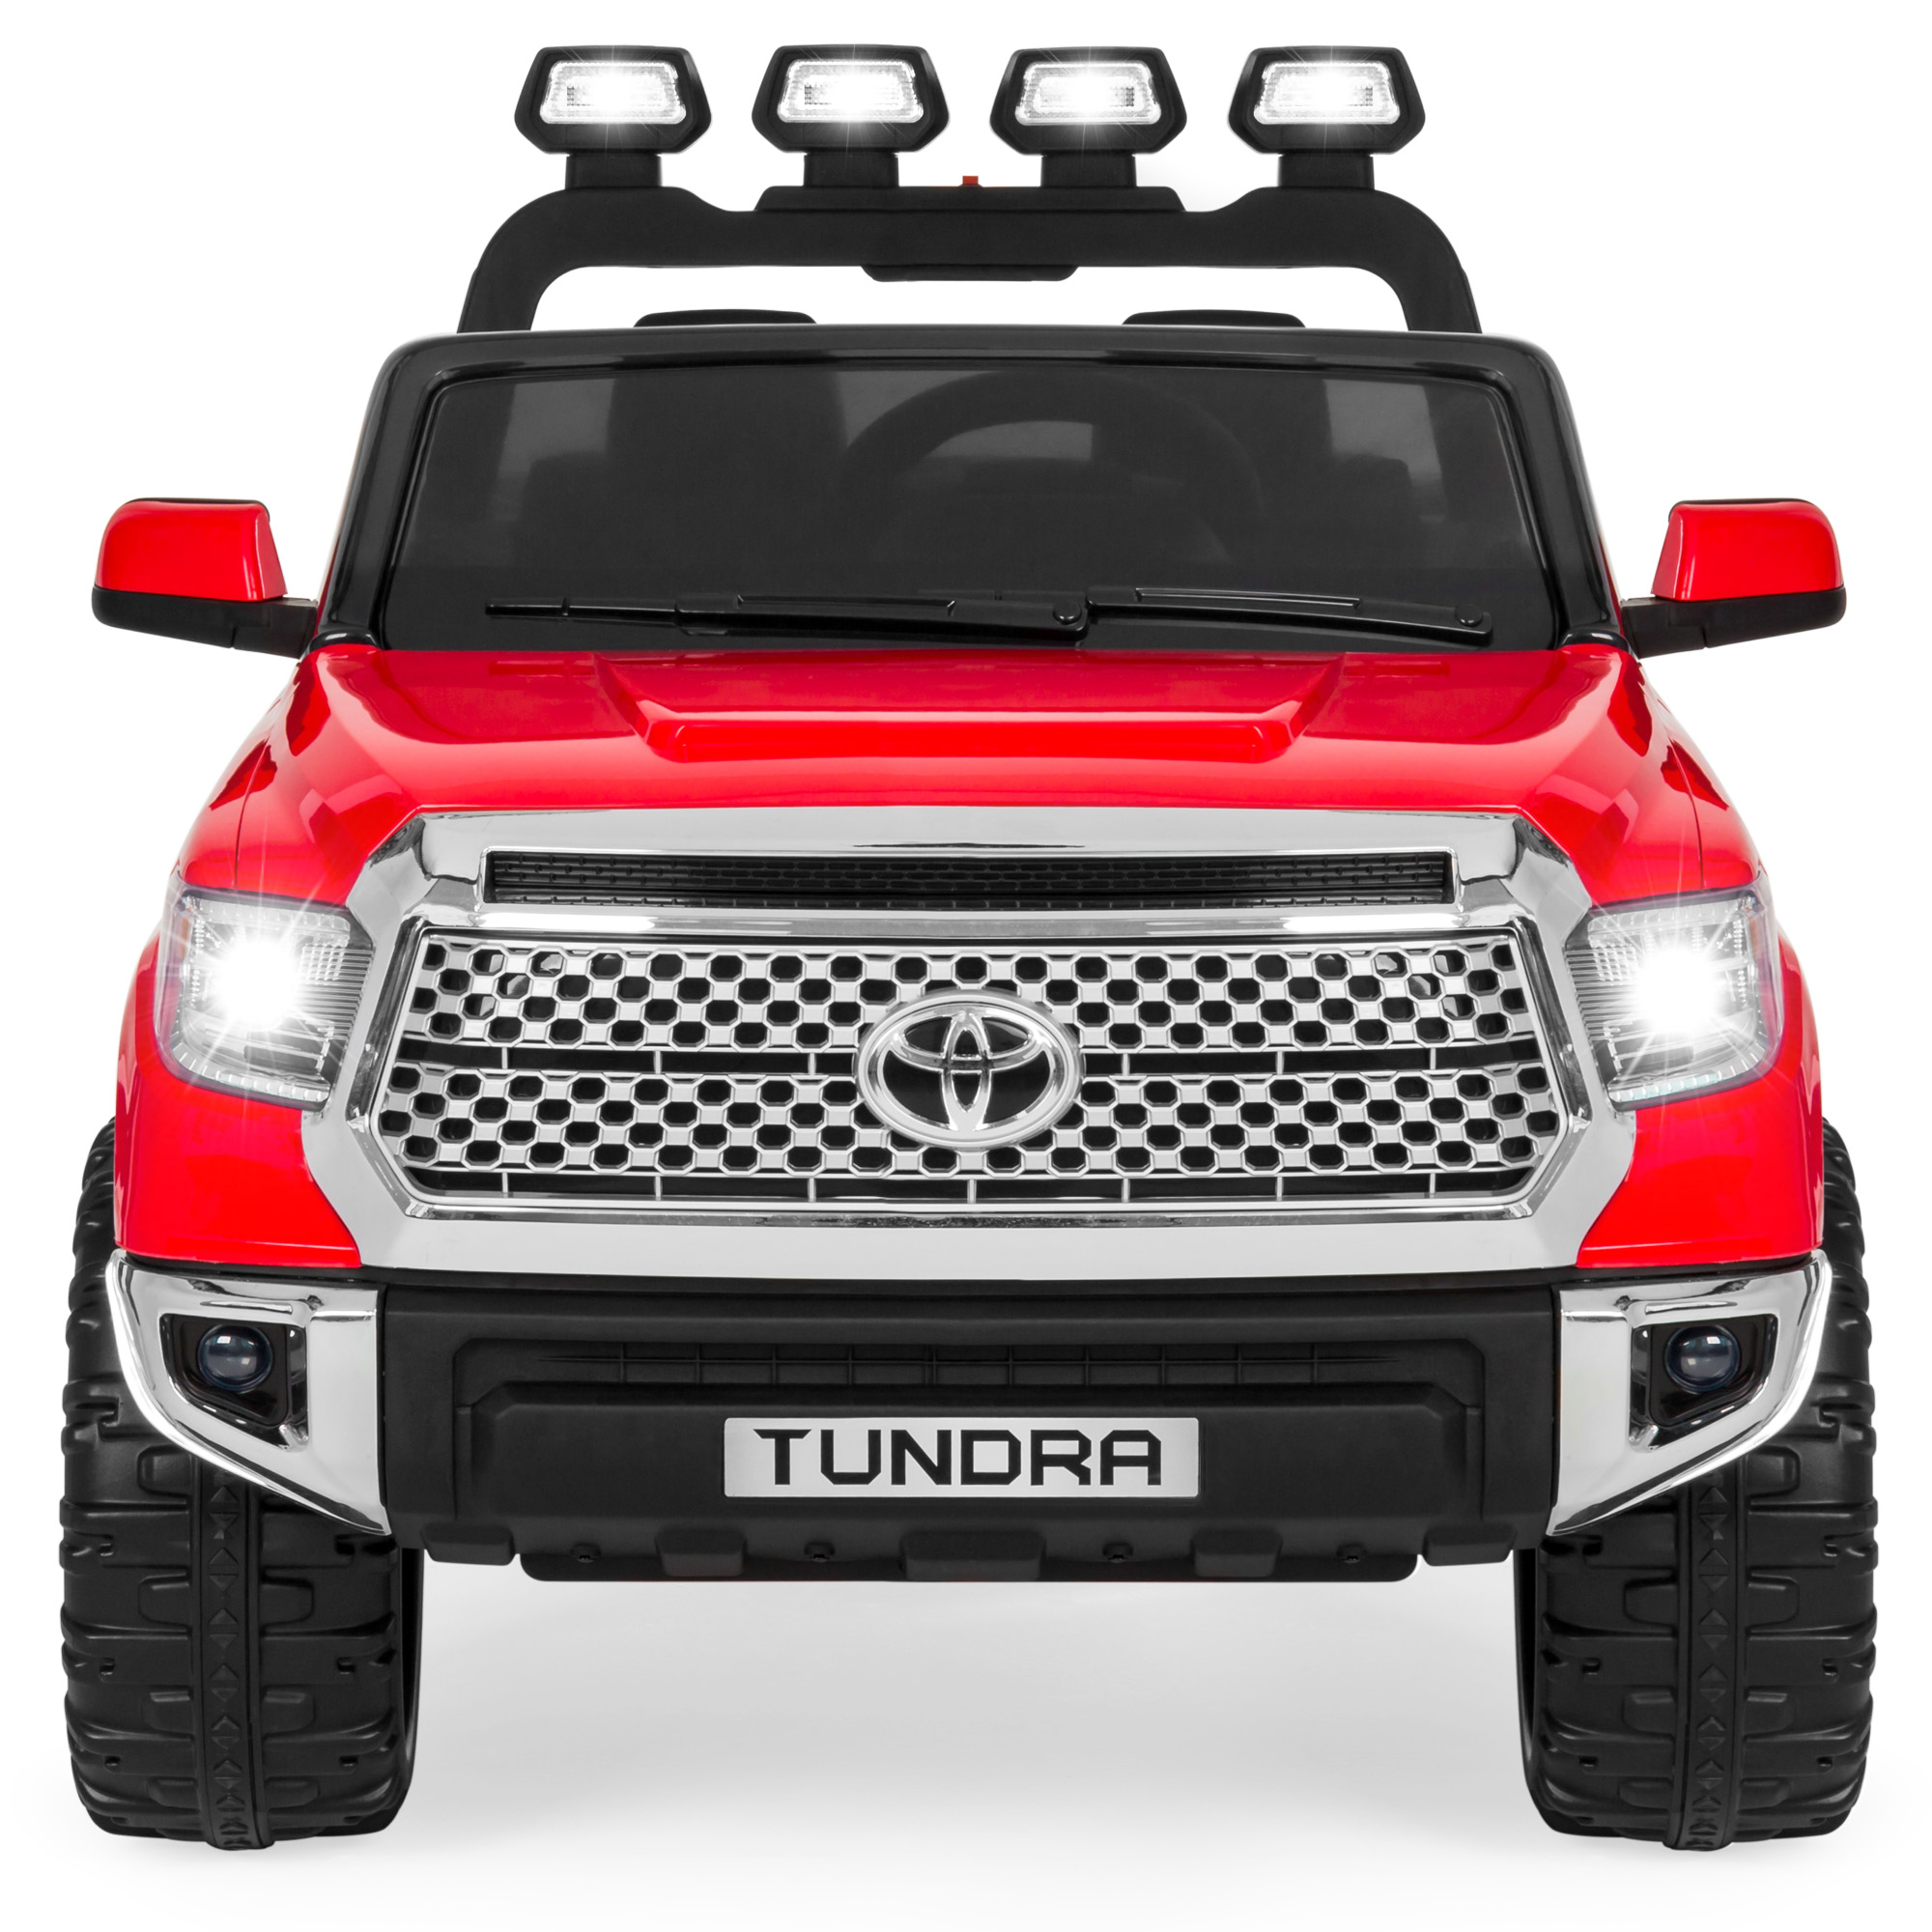 Led Lights For Trucks Best Choice Products 12v Kids Battery Powered Remote Control Toyota Tundra Ride On Truck W Led Lights Music Storage Compartment Red